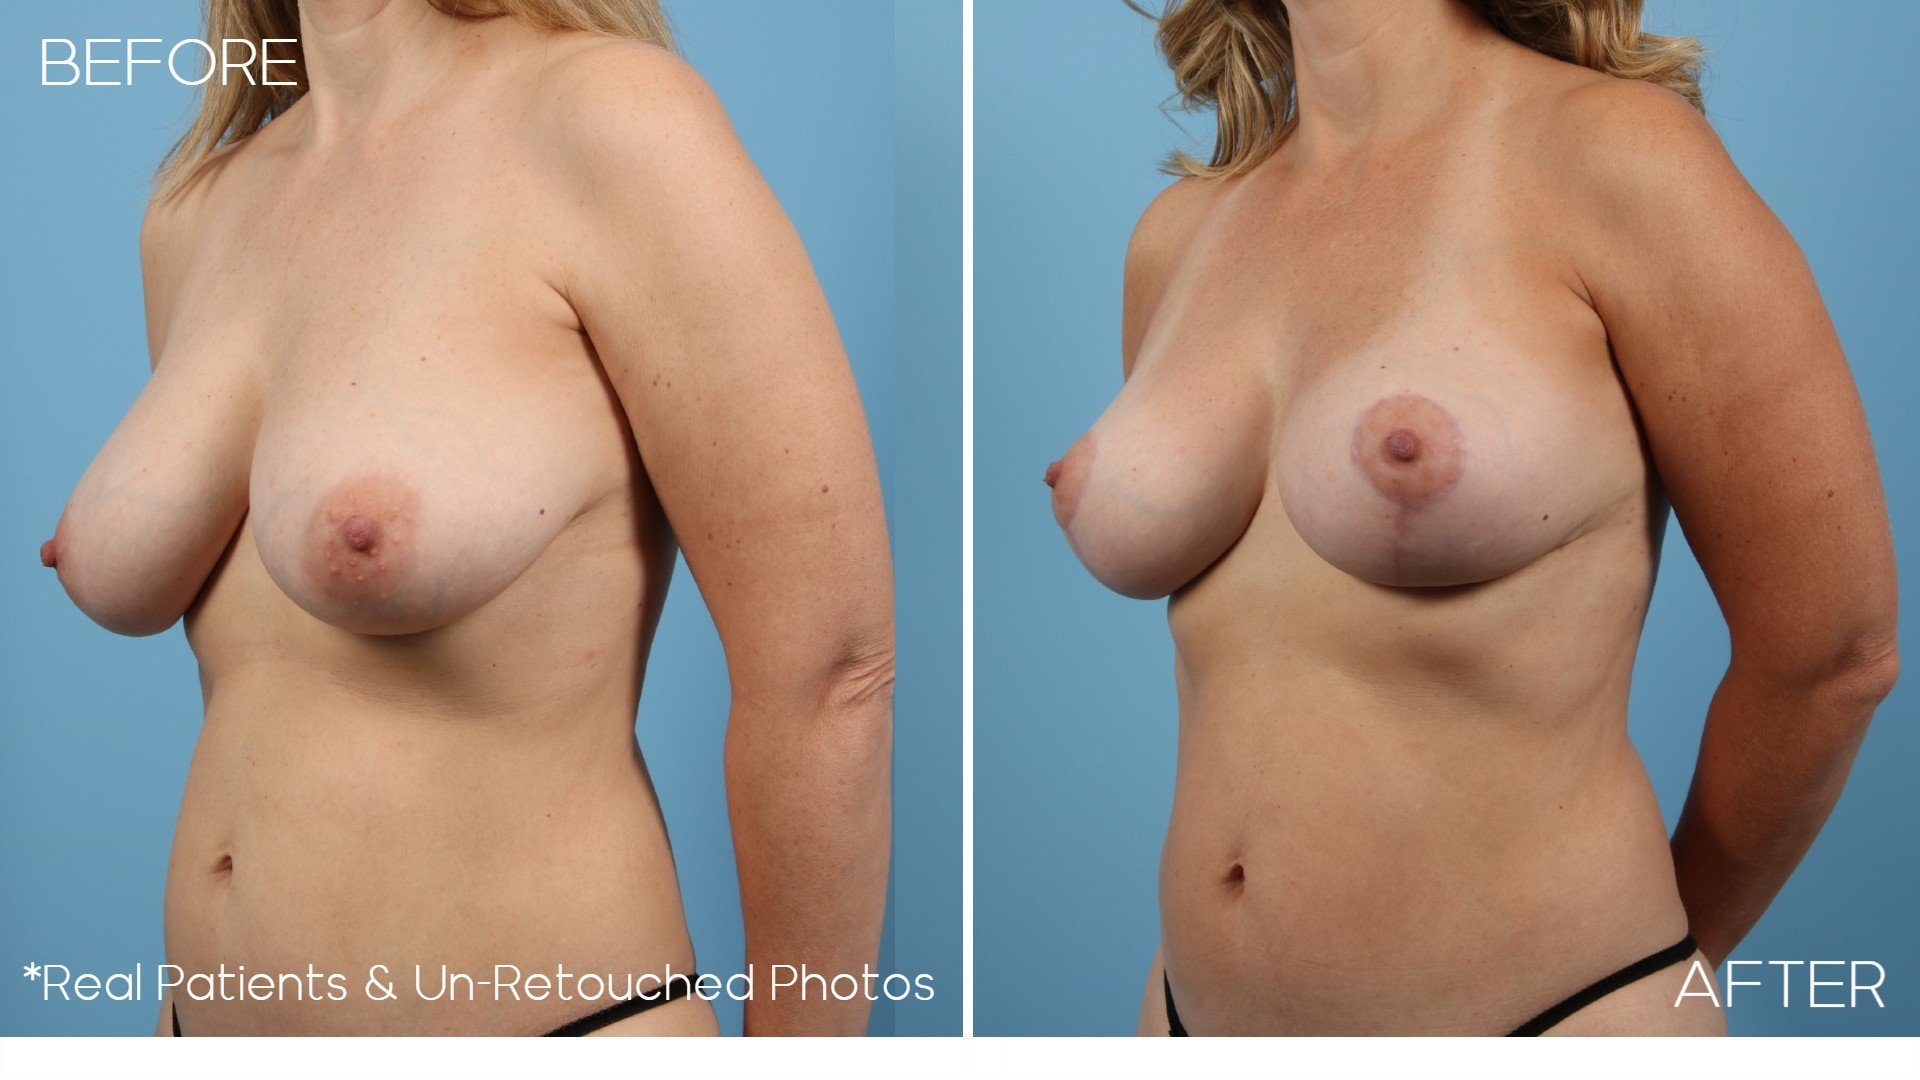 Case-1-Replaced-Before-and-After-Oblique